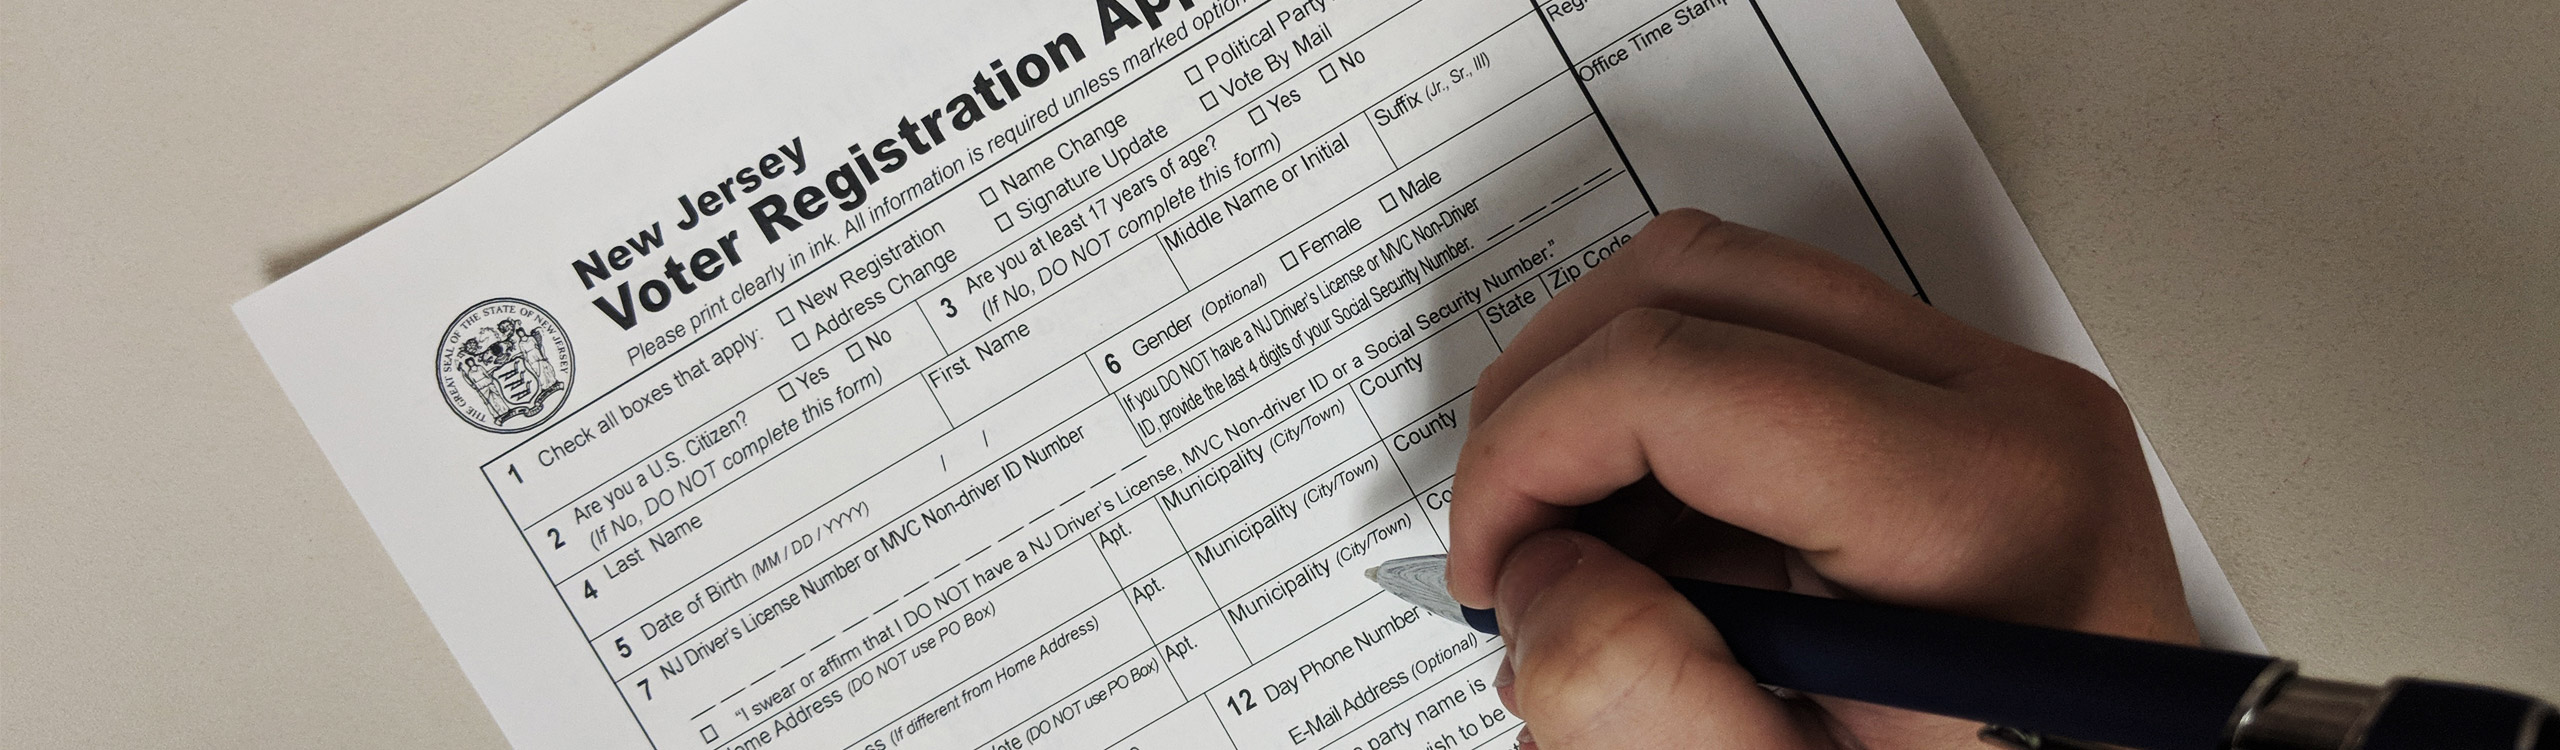 Nj Dos Division Of Elections Register To Vote